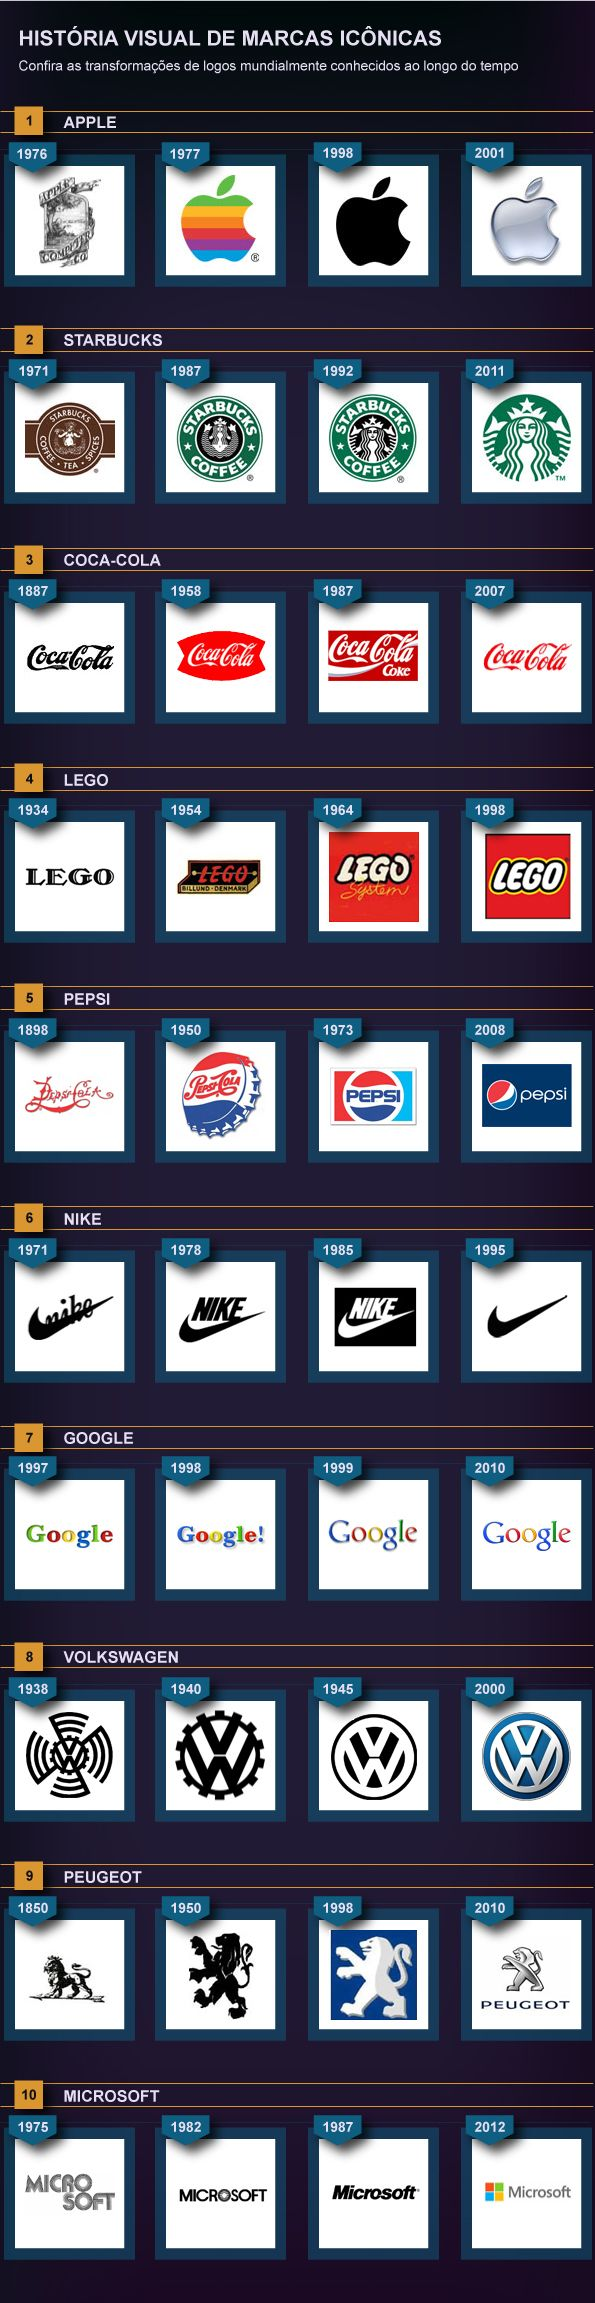 the evolution of 10 famous logos